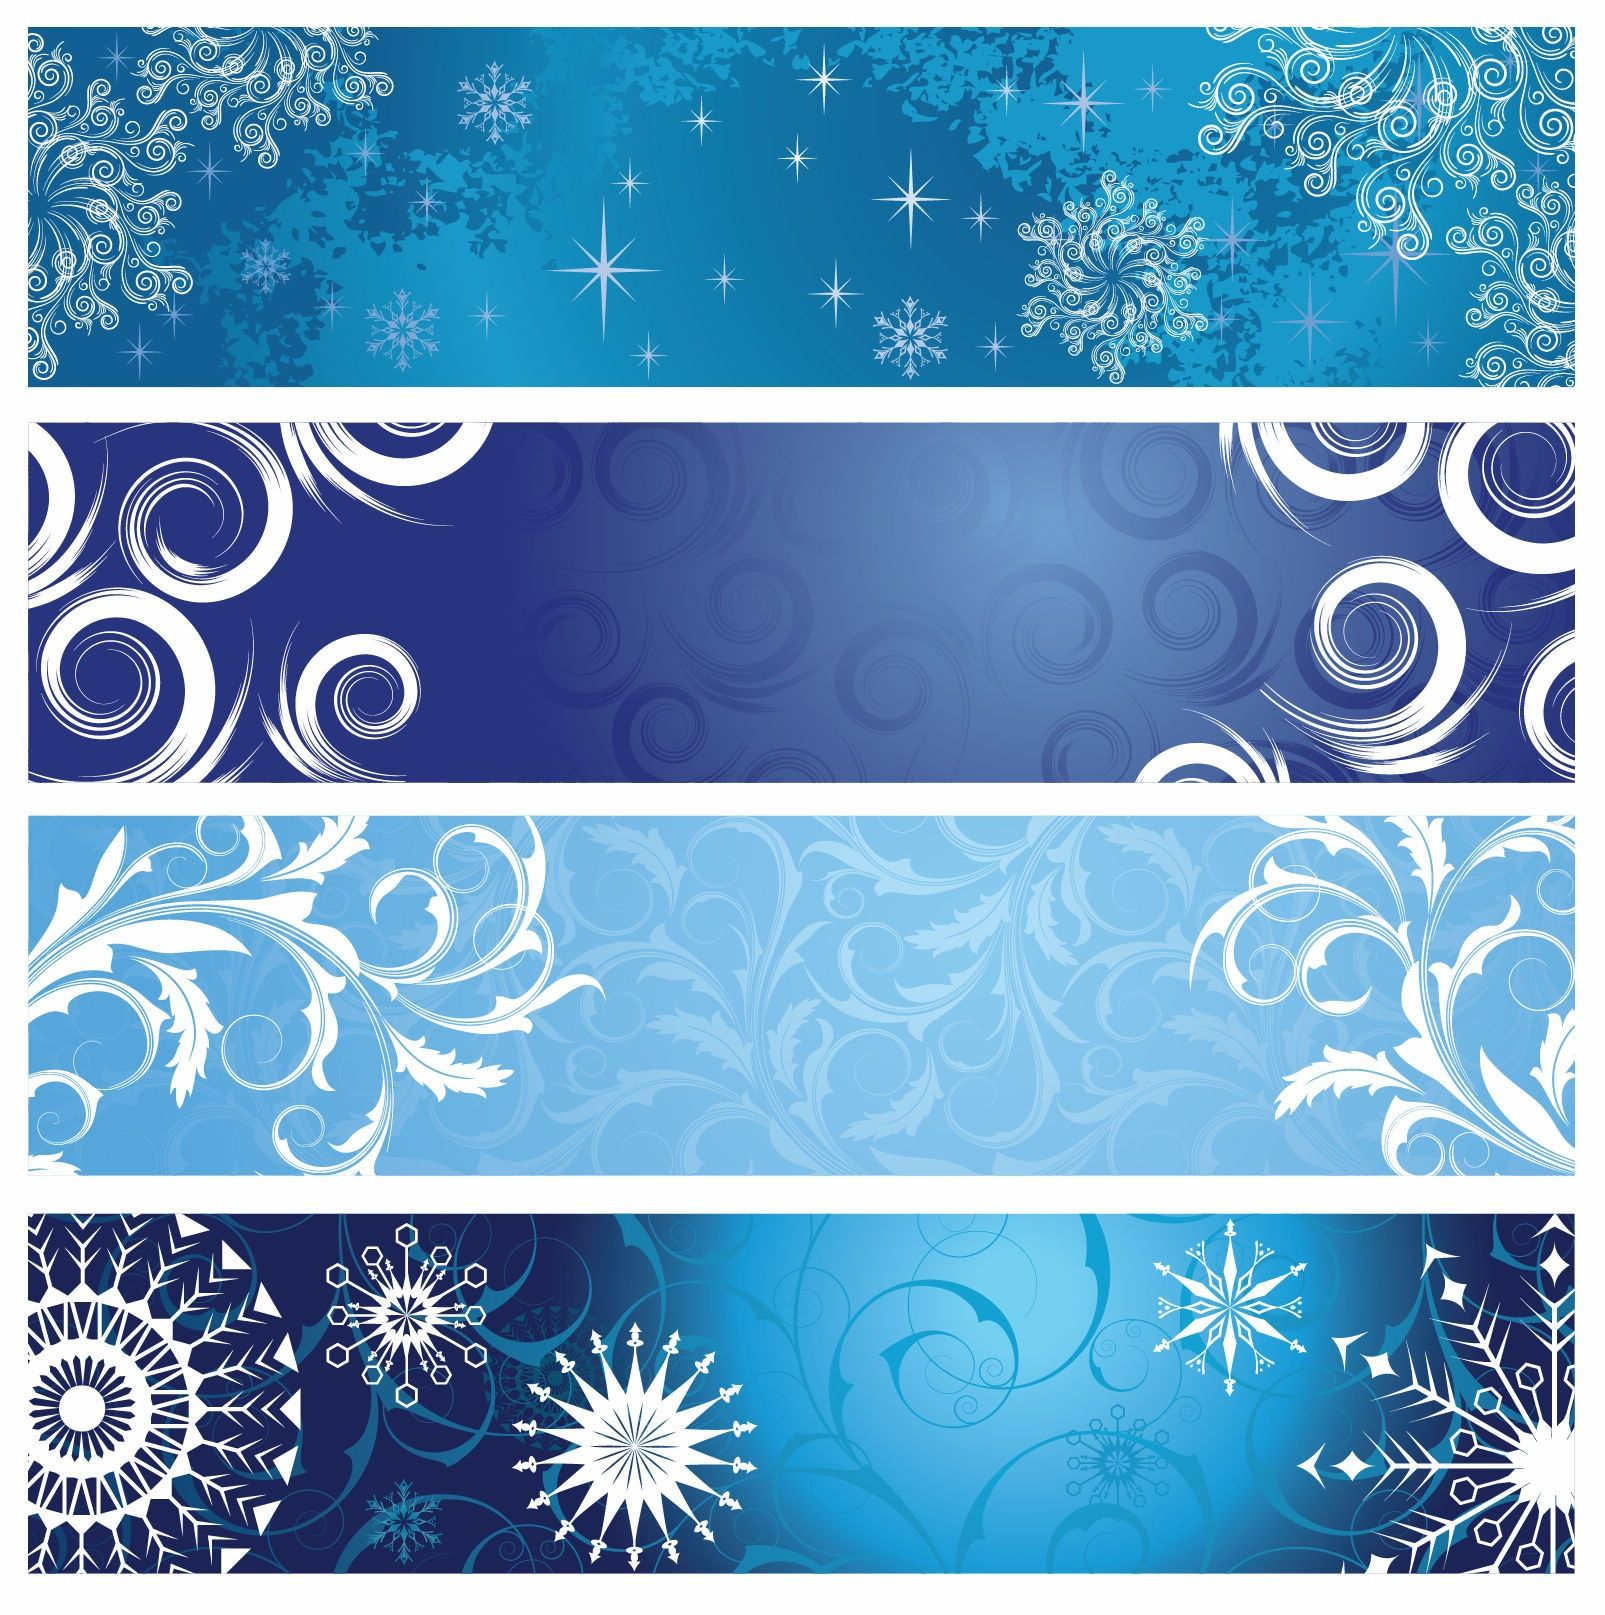 Free Vector Graphics Vector Christmas Banners with